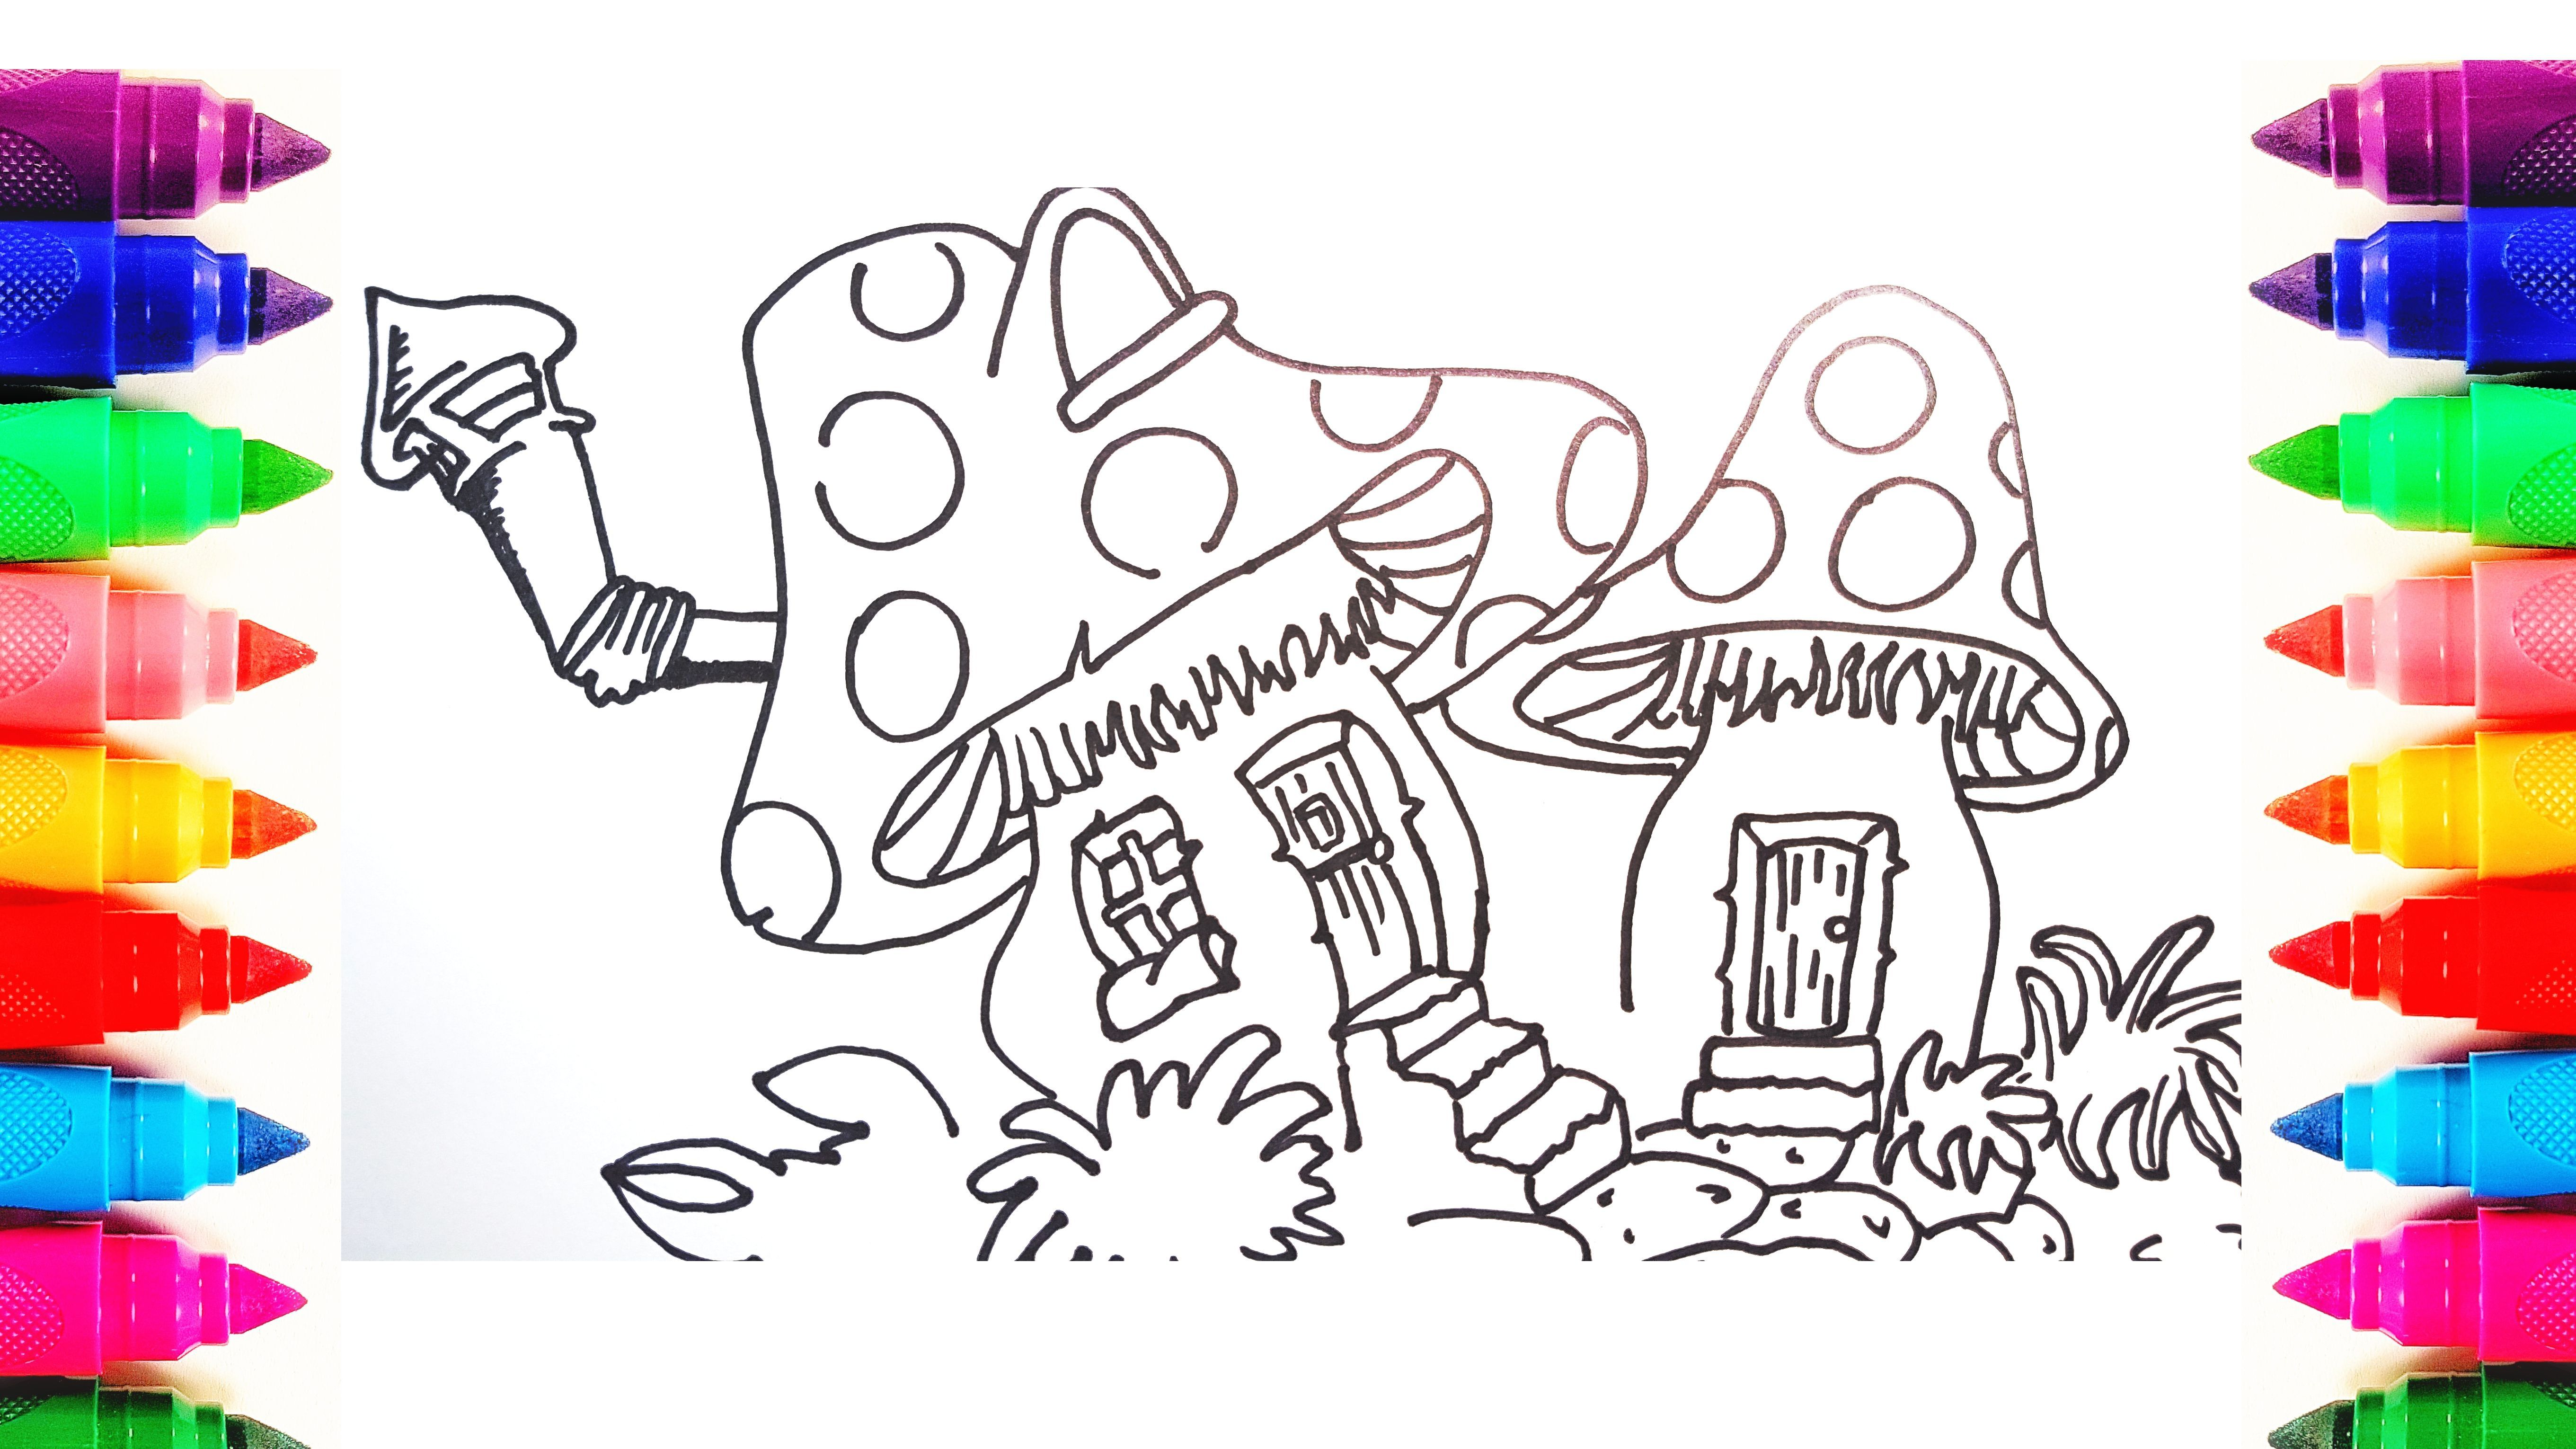 How To Draw Cute Mushroom House For Kids Drawing And Coloring Pages Af67c94be5d19d00592871db728f29a7 728035095985432156 Rainbow